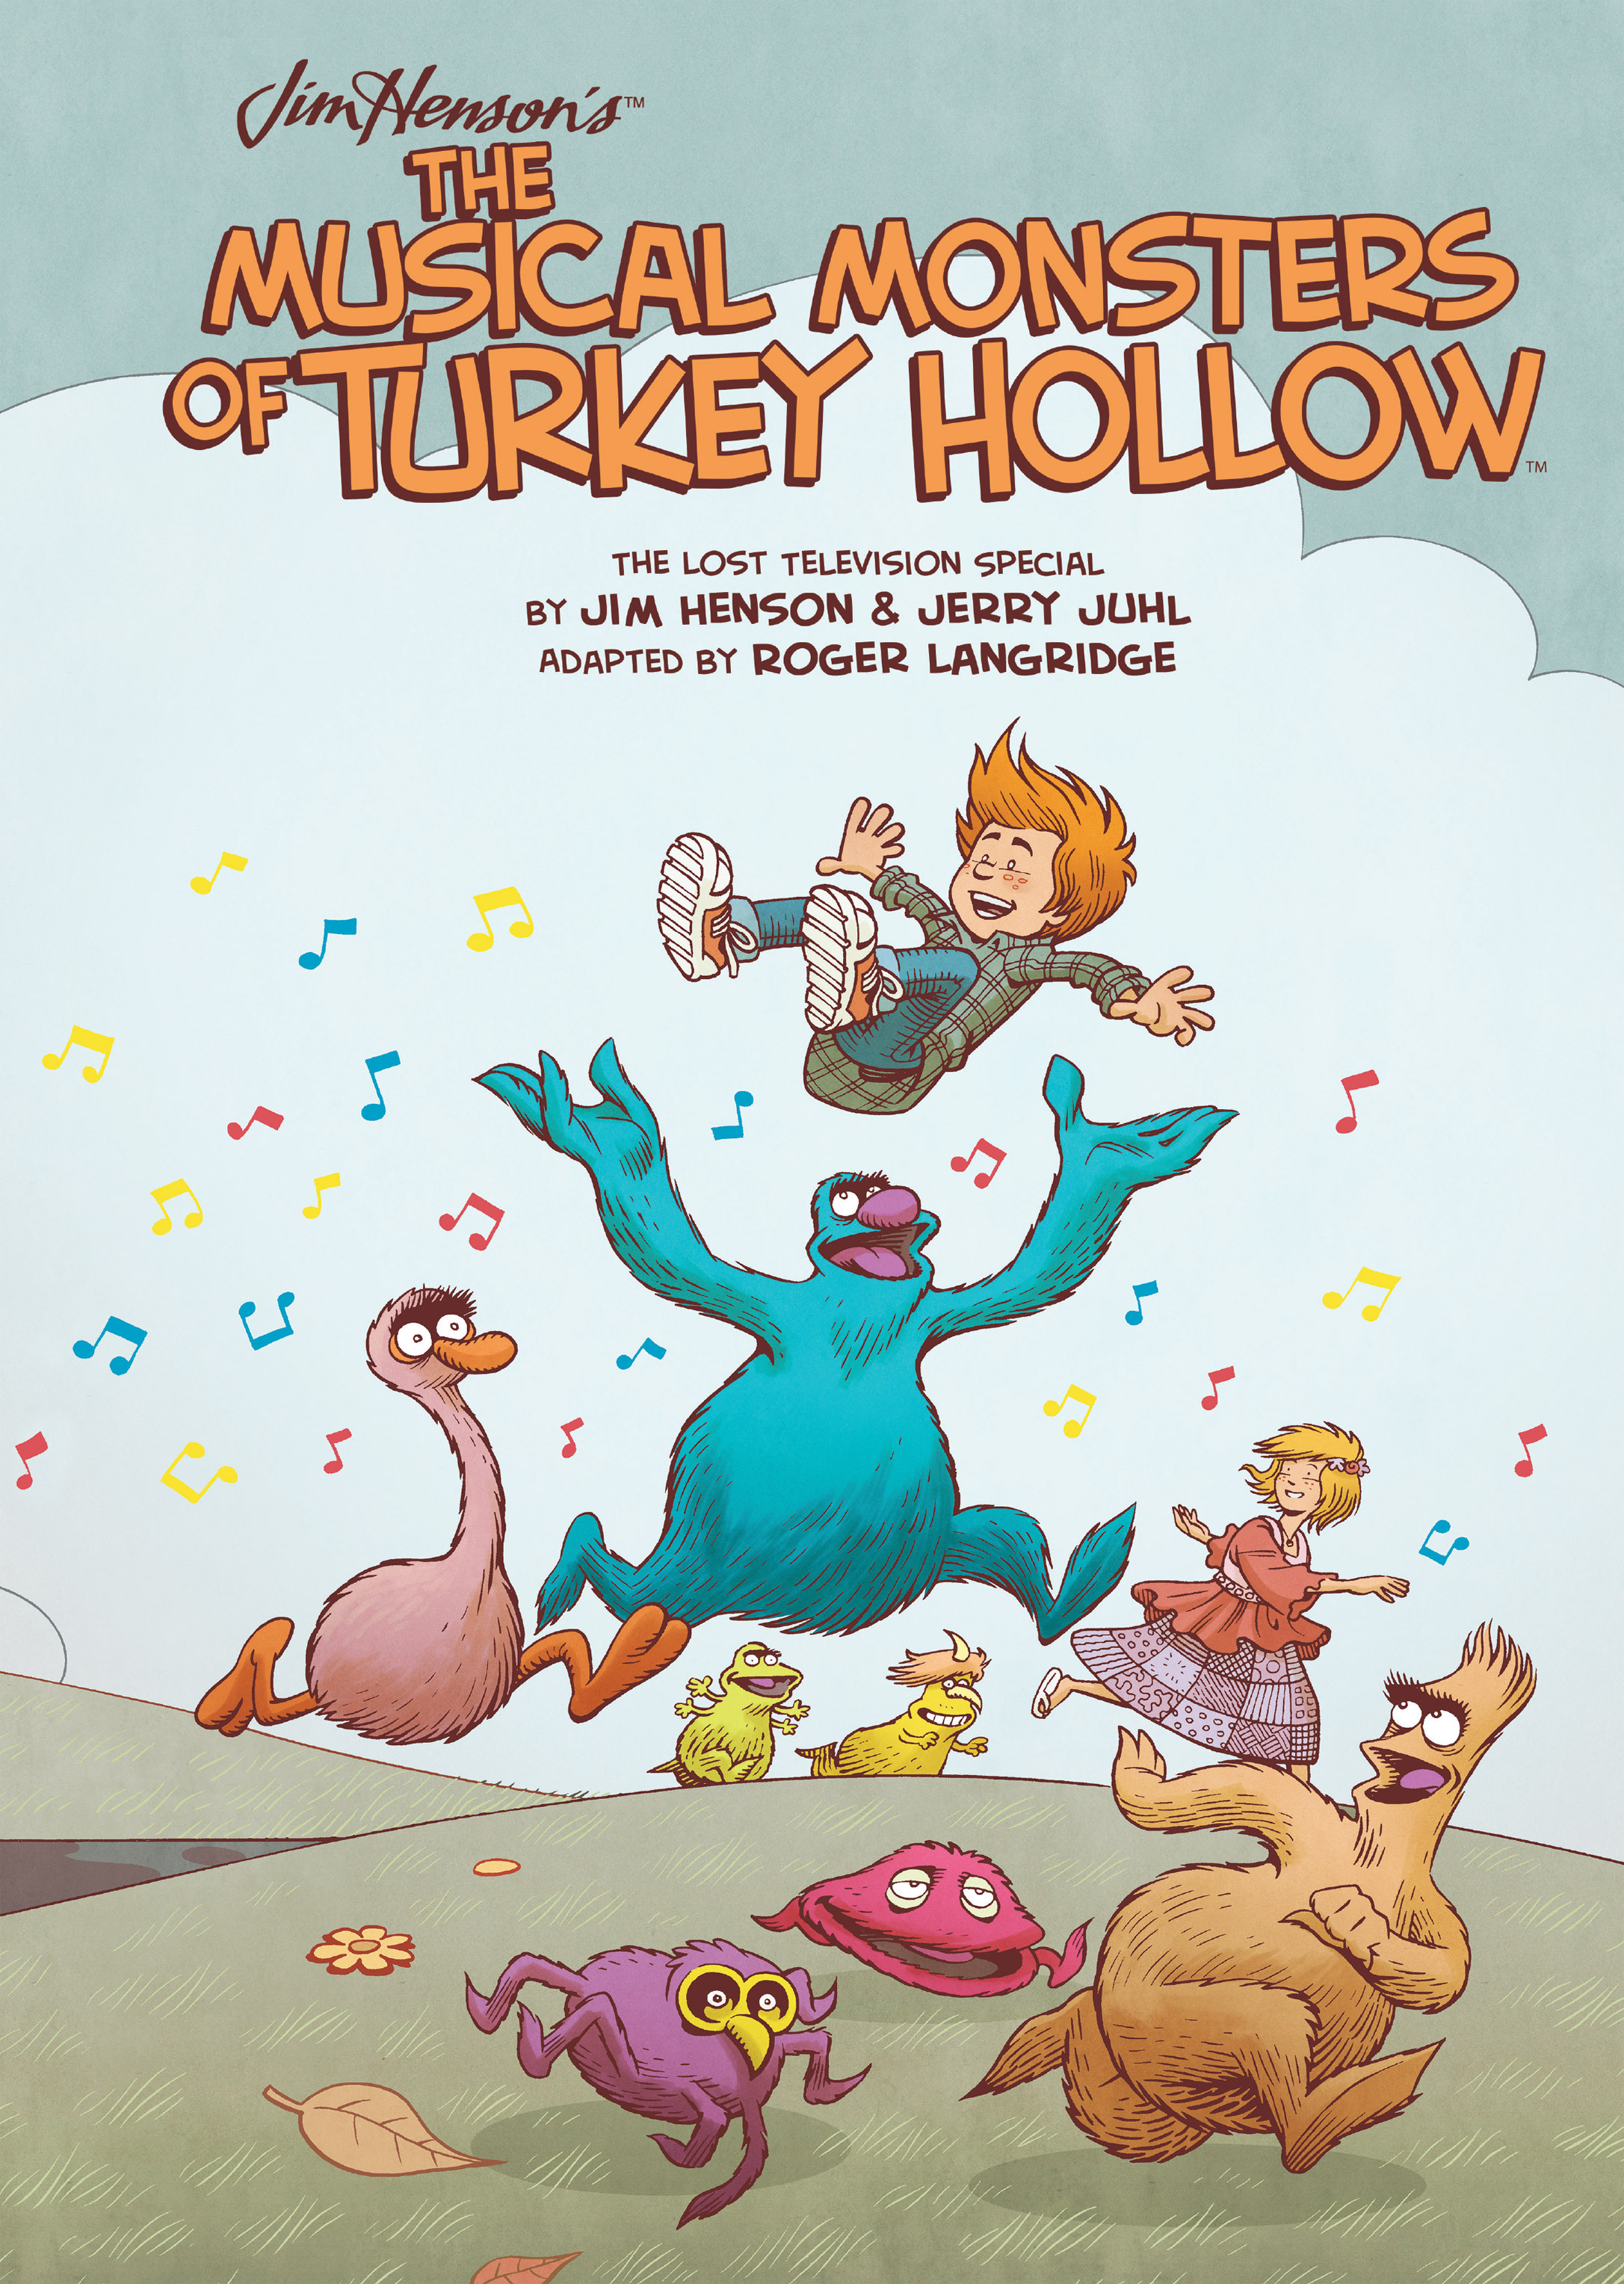 Read online Jim Henson's The Musical Monsters of Turkey Hollow comic -  Issue # Full - 1